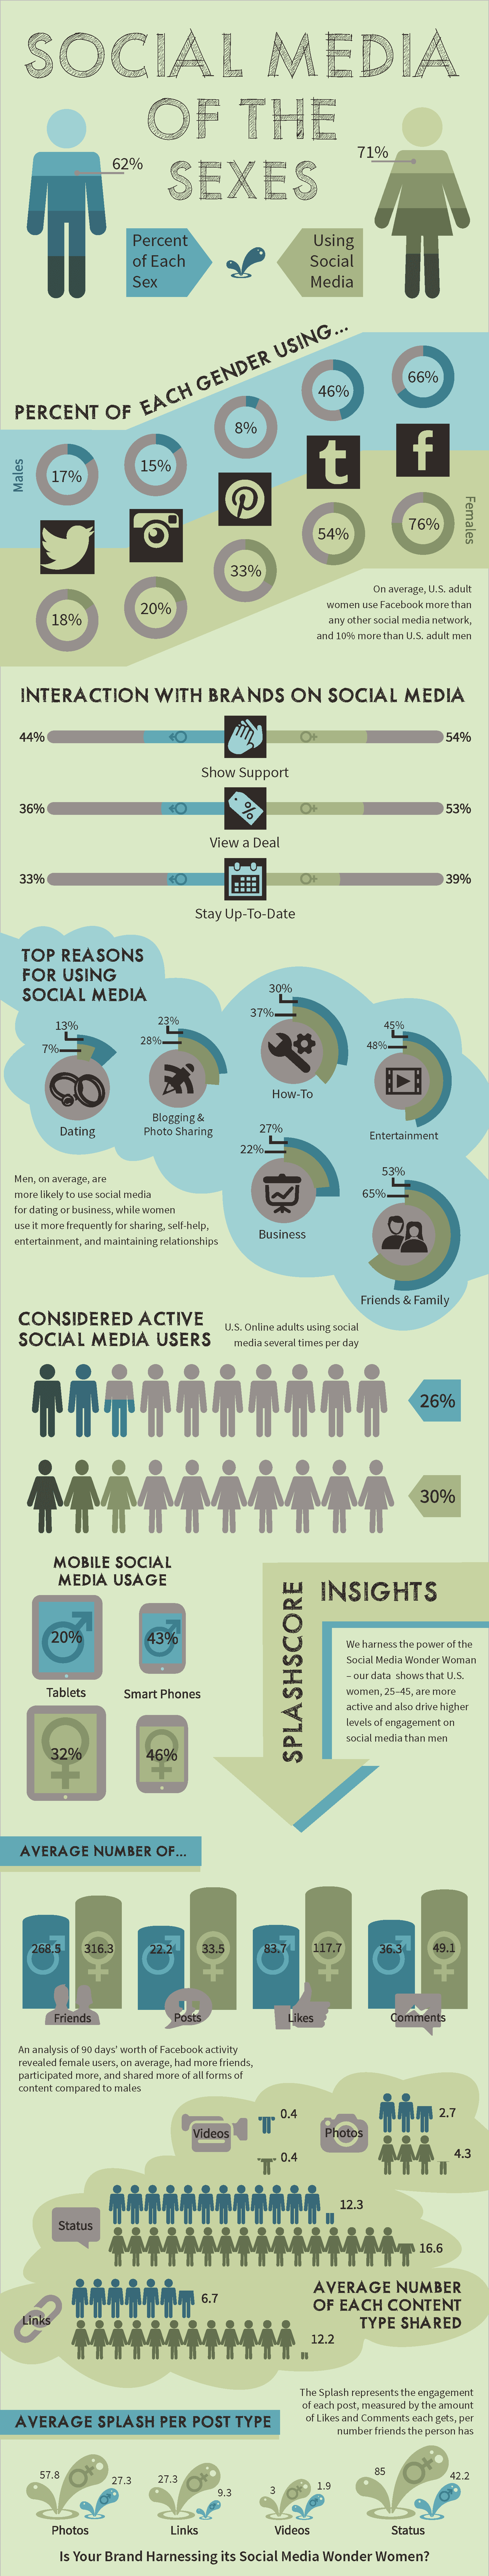 Social+Media+Usage+by+Gender+Infographic